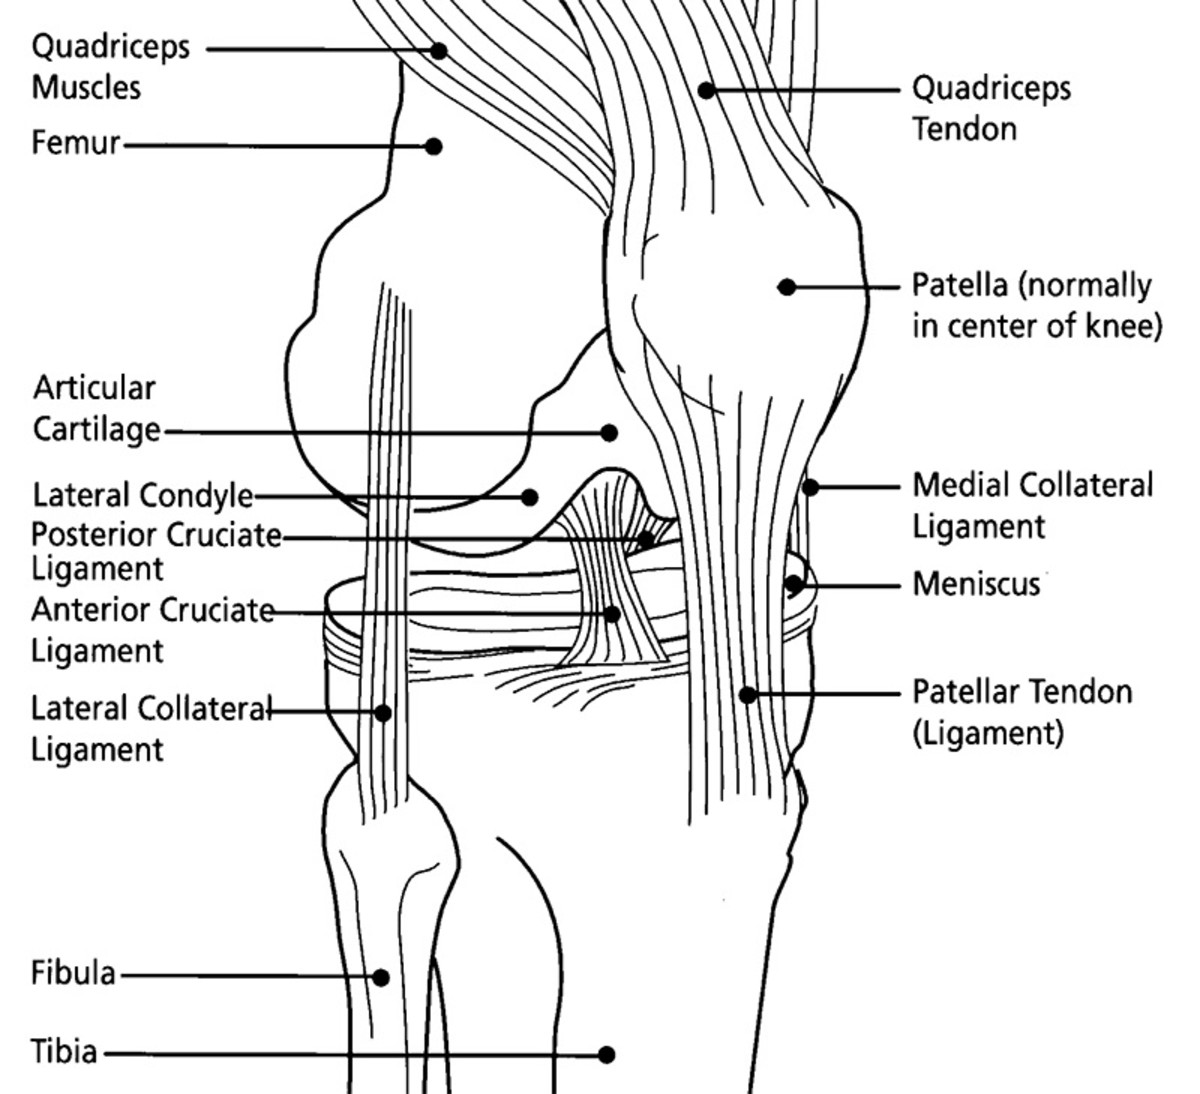 Diagram of the anatomy of the knee